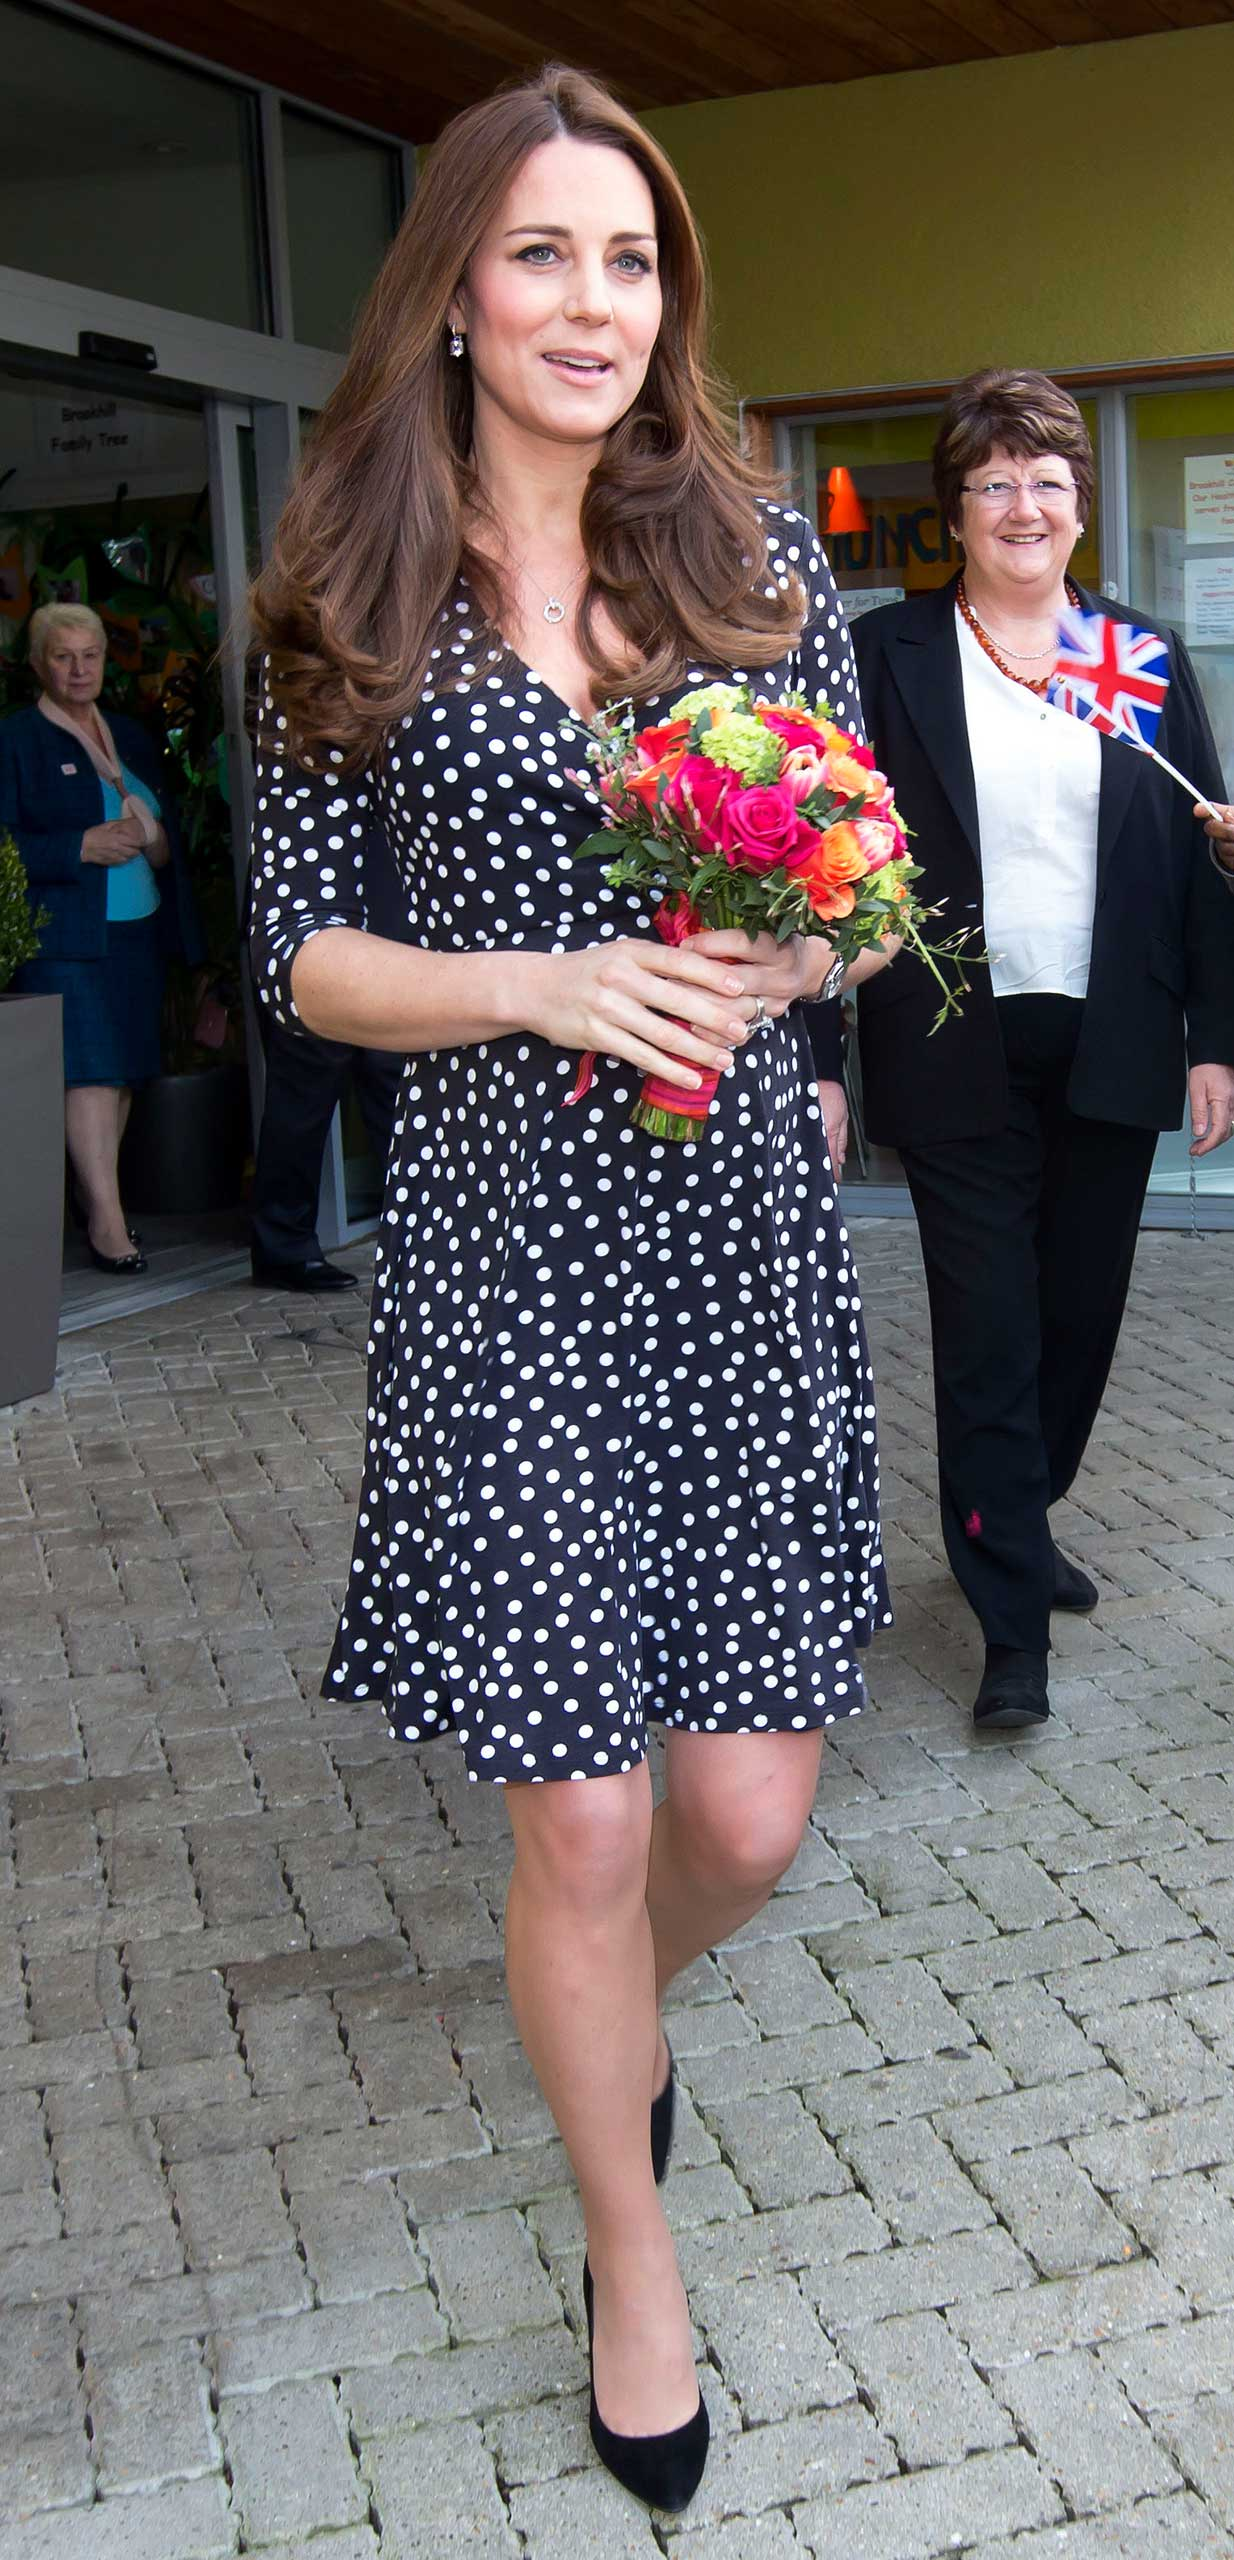 The Duchess of Cambridge visits the Brookhill Children's Centre in Woolwich, London, UK, on March 18, 2015.